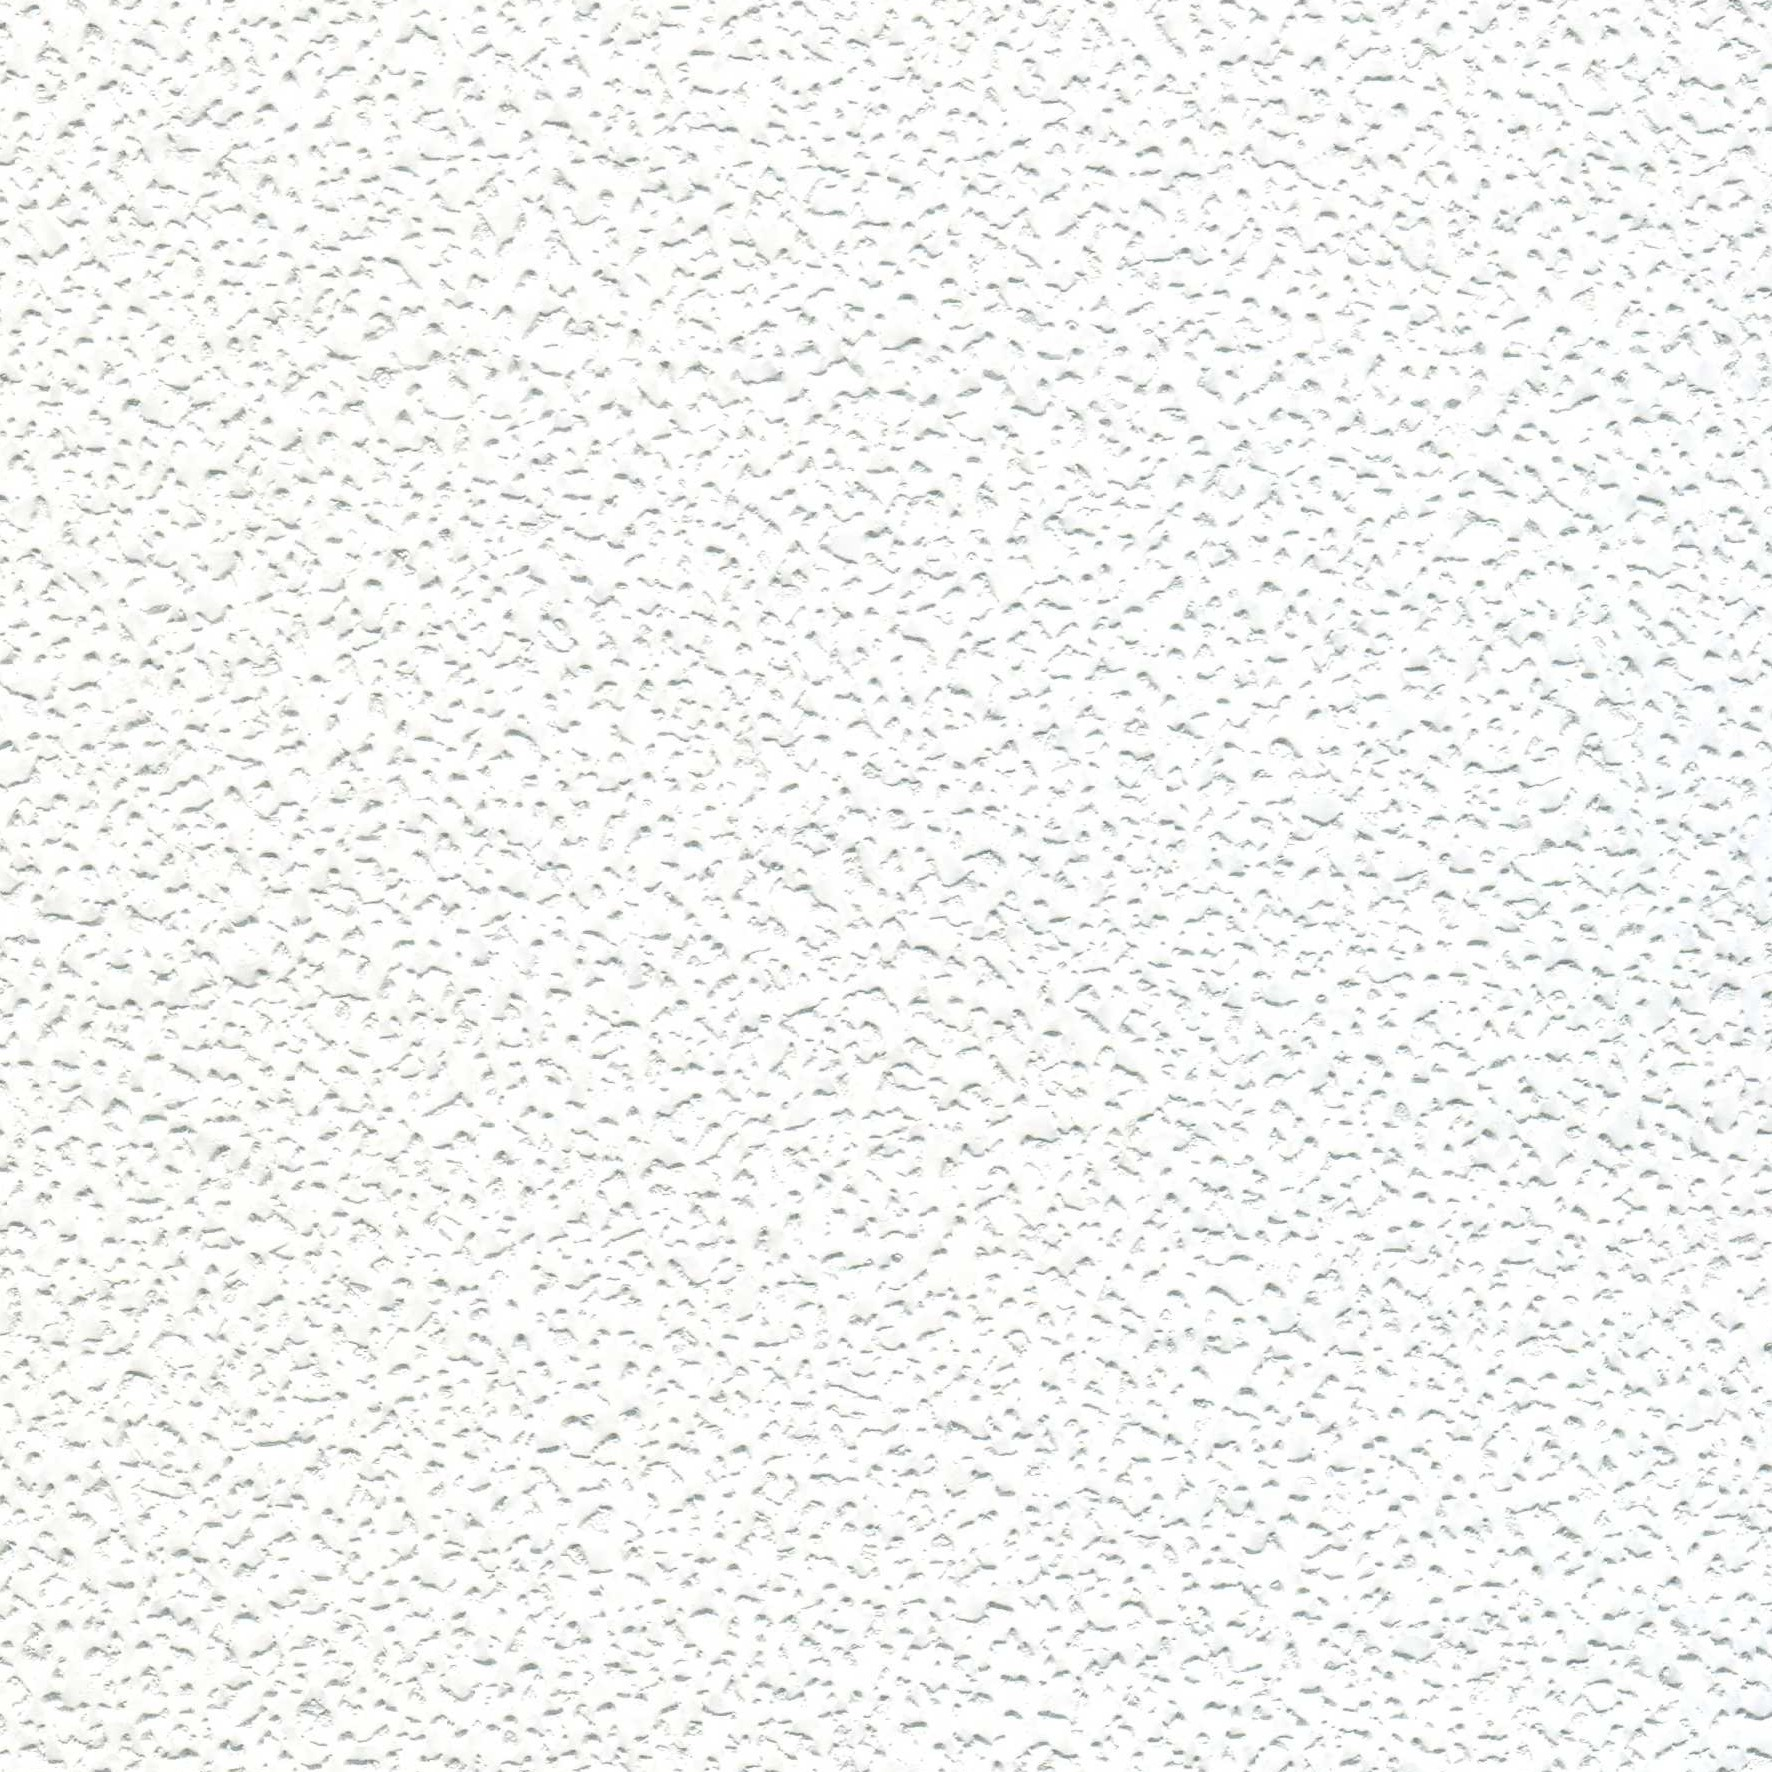 Gypsum tile high quality gypsum tile manufacturer from taiwan pattern no 976 dailygadgetfo Choice Image